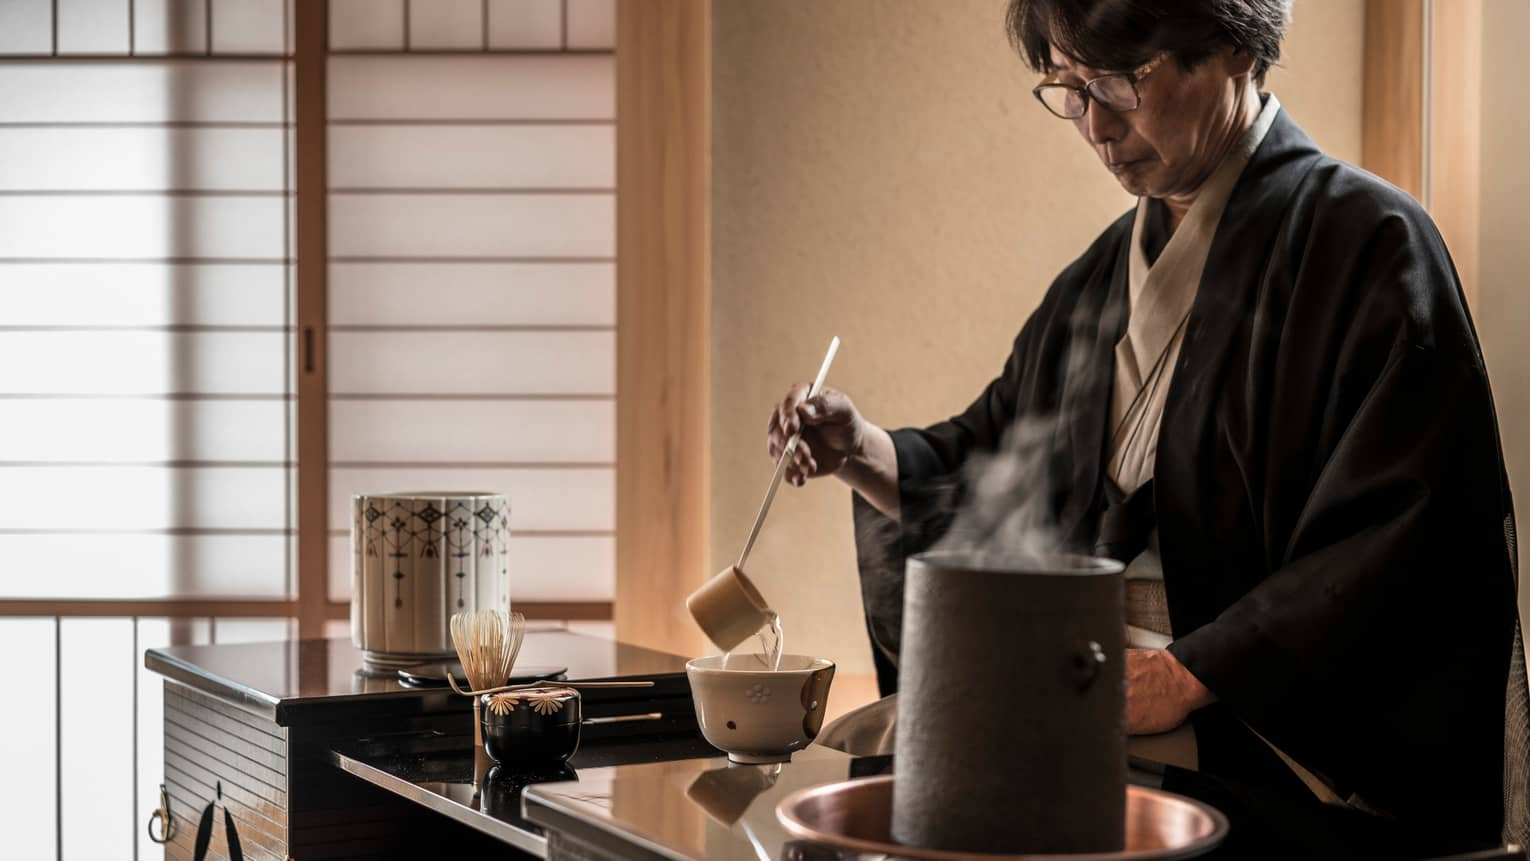 Man ladles hot tea into cup on table in teahouse by steaming pot